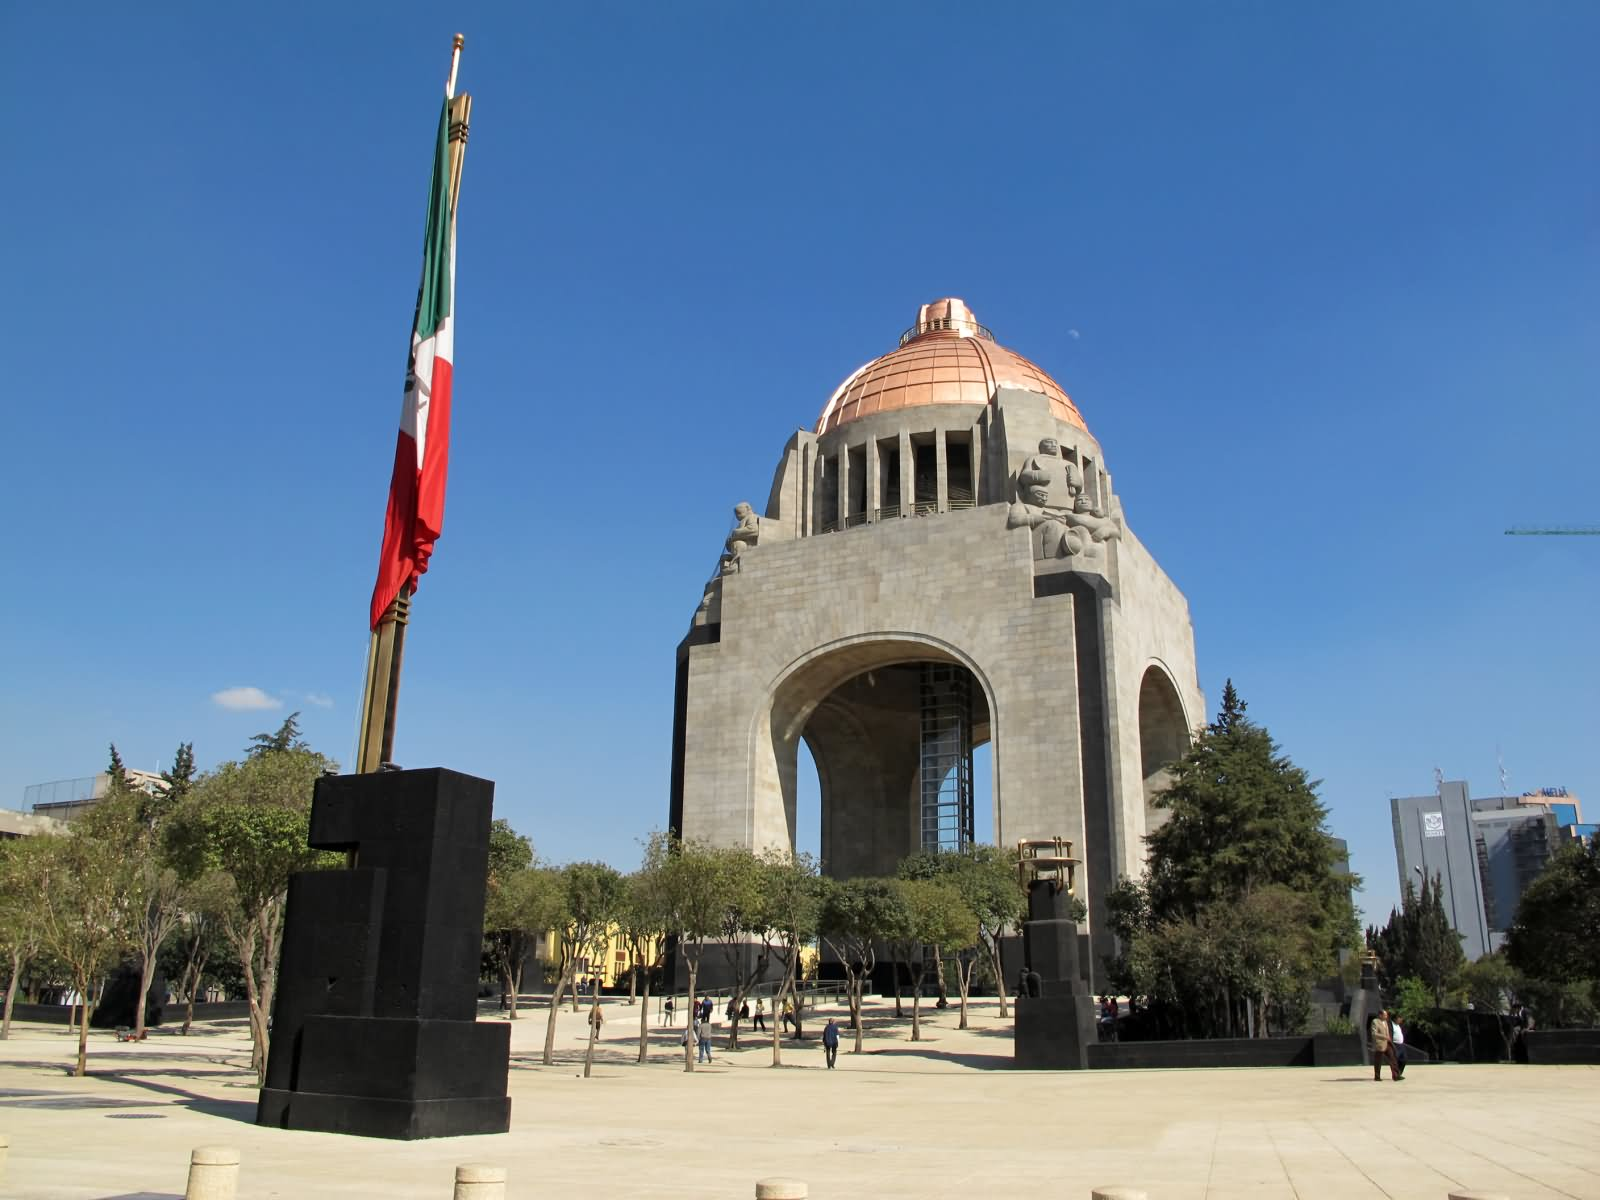 40 most beautiful pictures of monumento a la revolucion in mexico